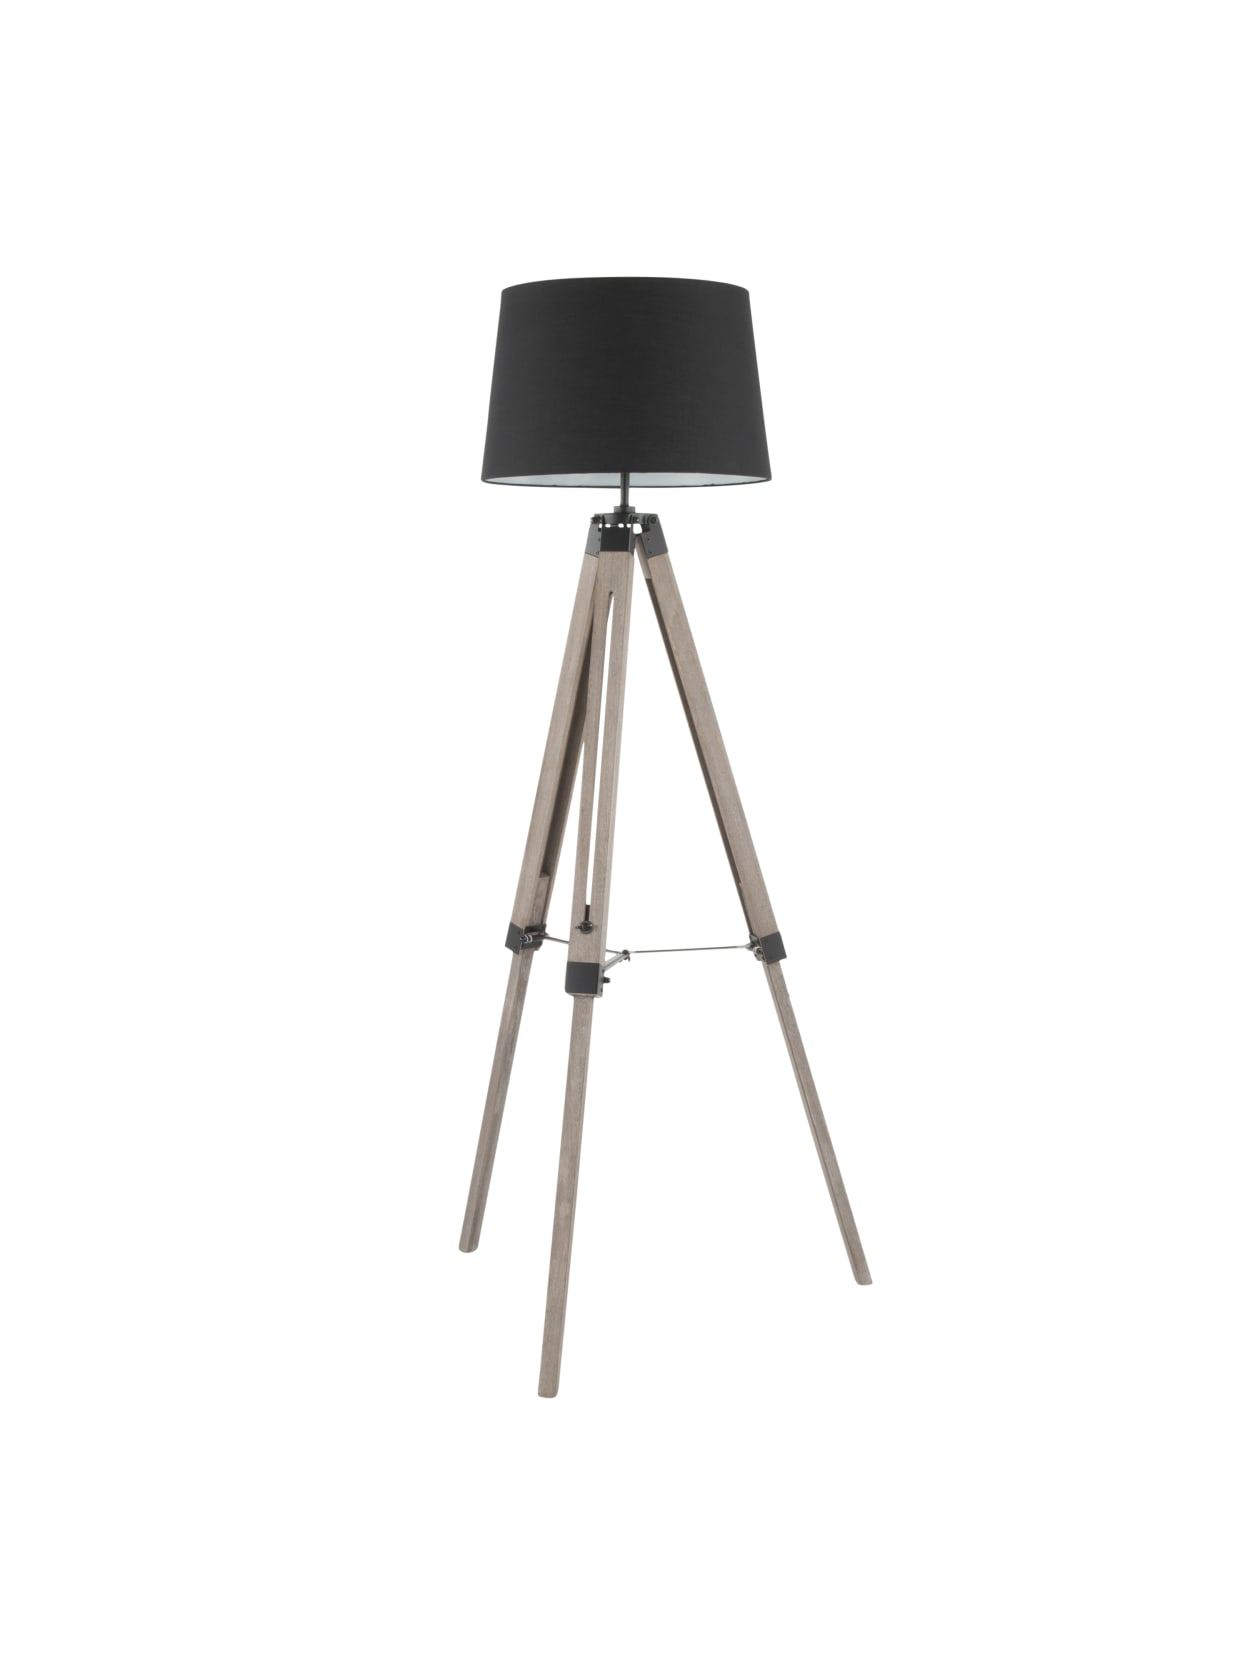 Image of: Lumisource Compass Mid Century Modern Floor Lamp Grey Washed Woodblack Shade Office Depot